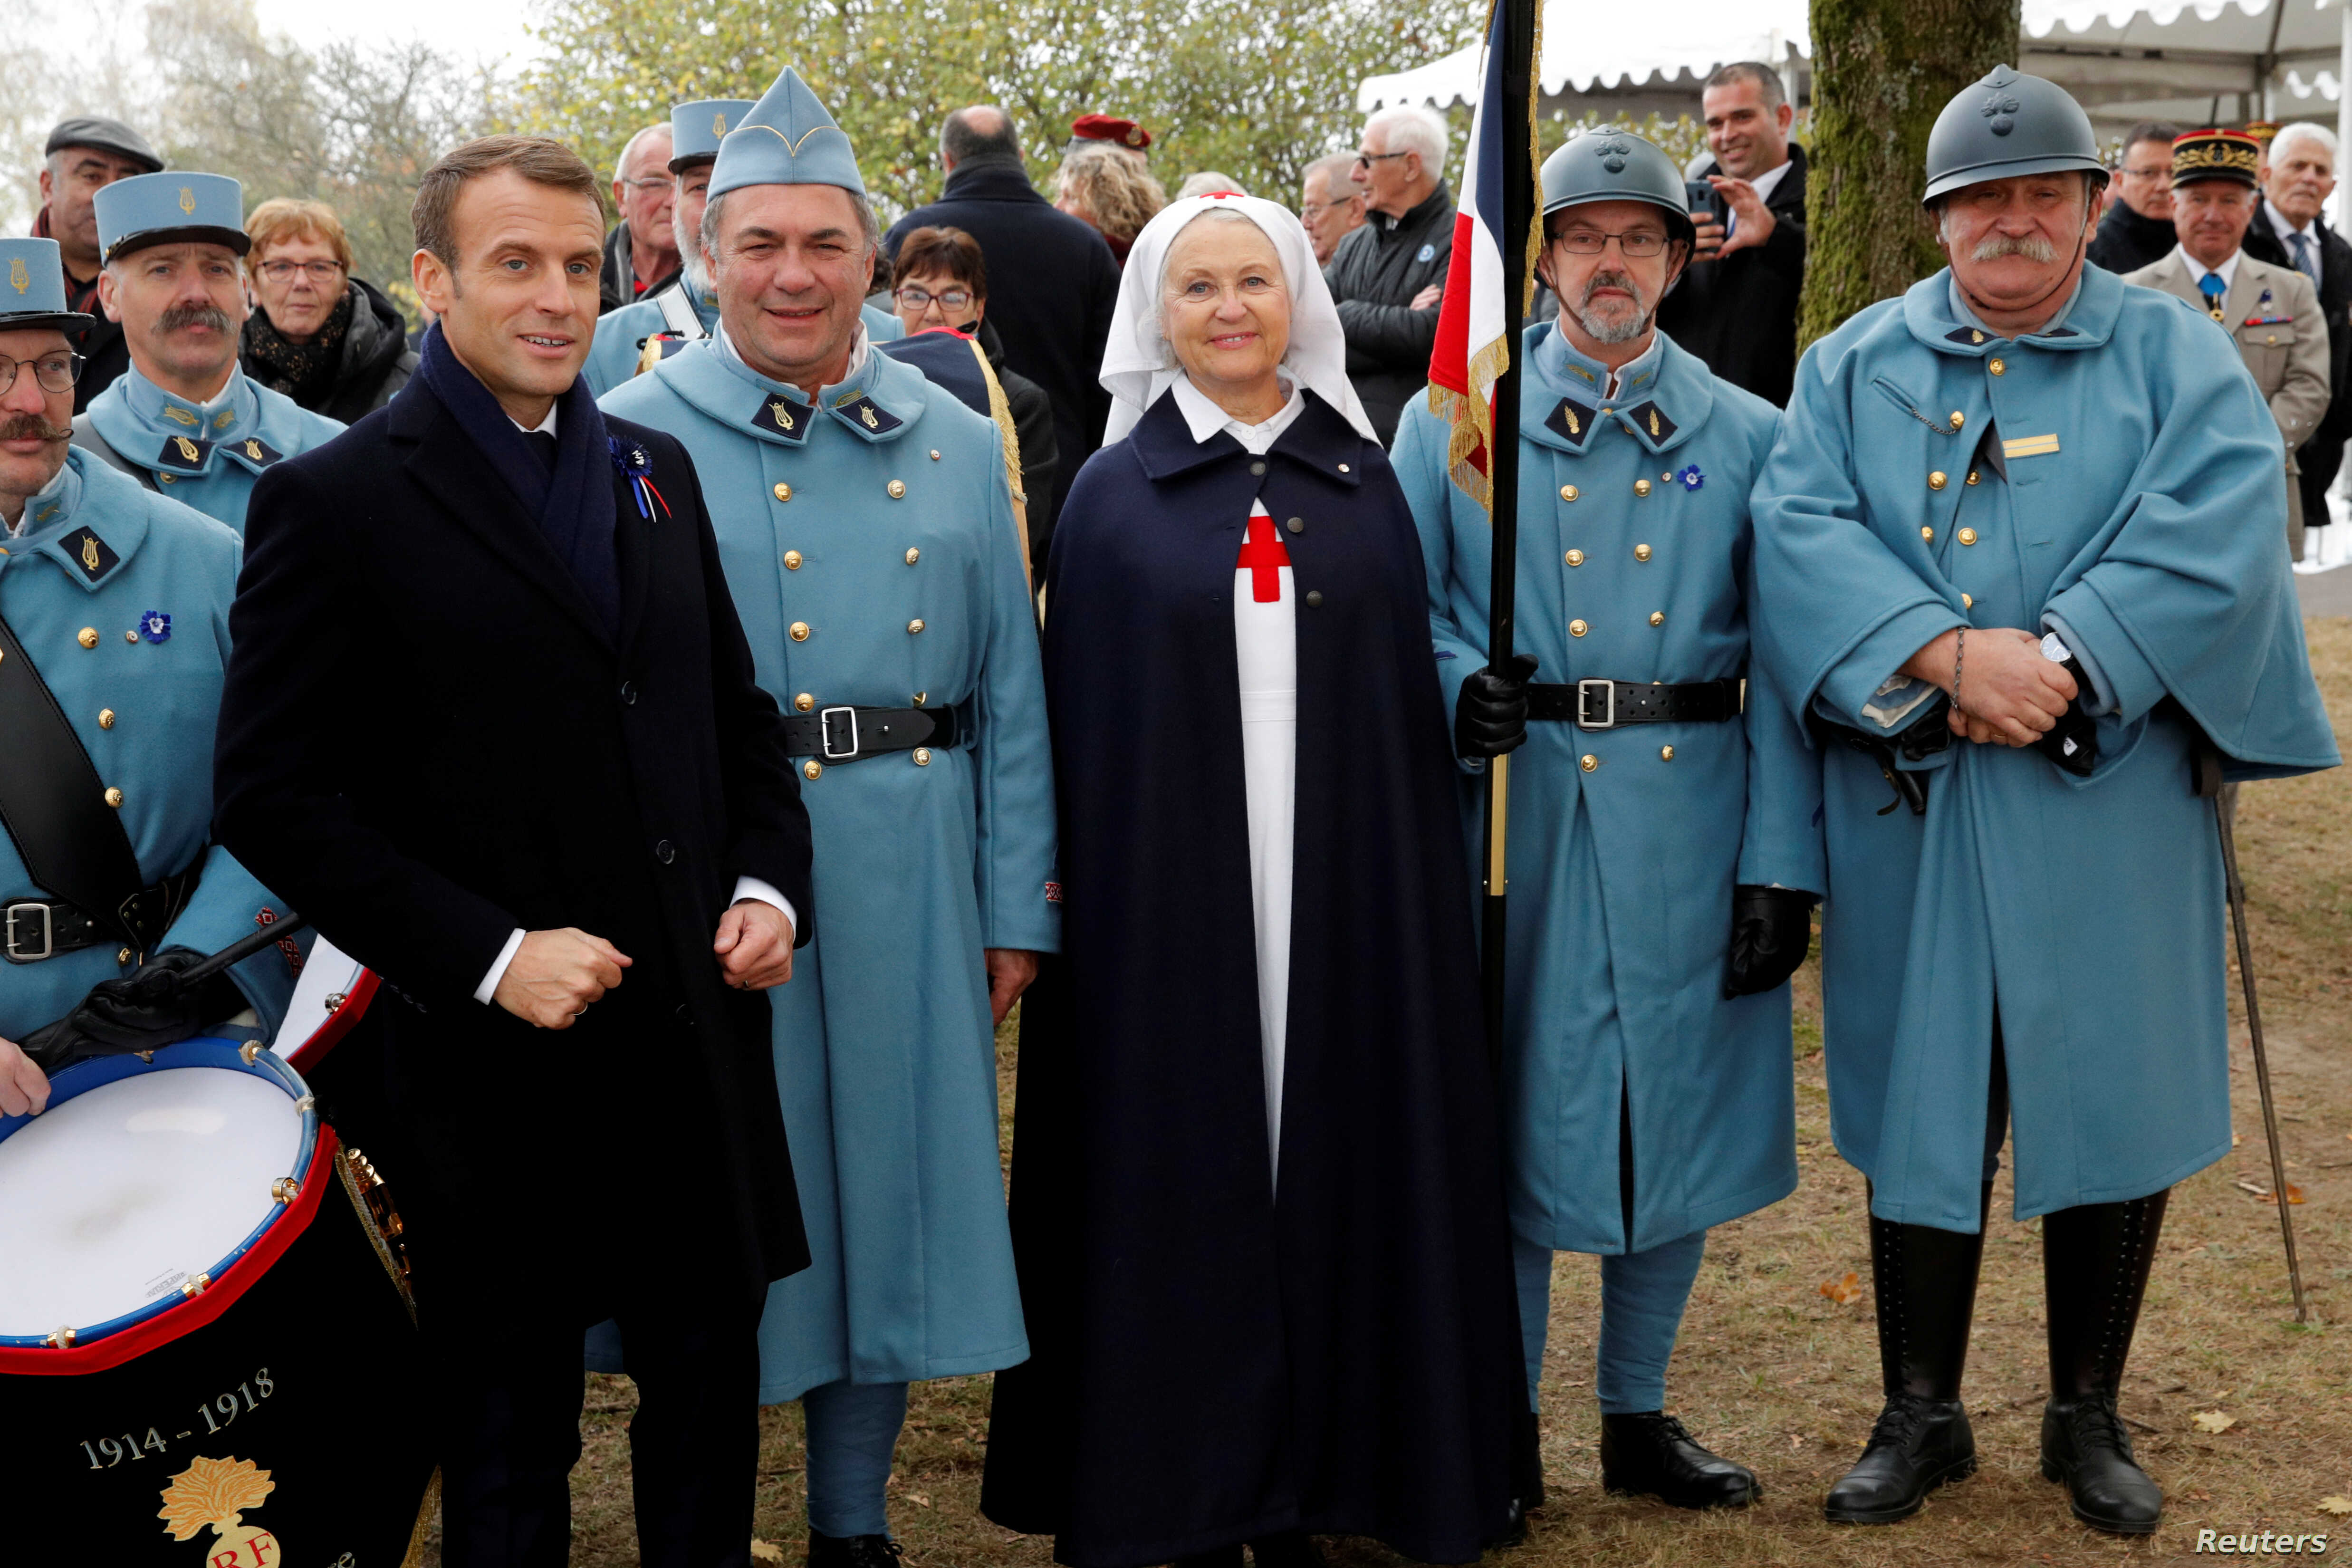 French President Emmanuel Macron poses with history enthusiasts, dressed with vintage army uniforms as Poilu (French soldier in World War I), after a ceremony at the Memorial to the Battle of Morhange, Eastern France, Nov.  5, 2018 as part of a World...